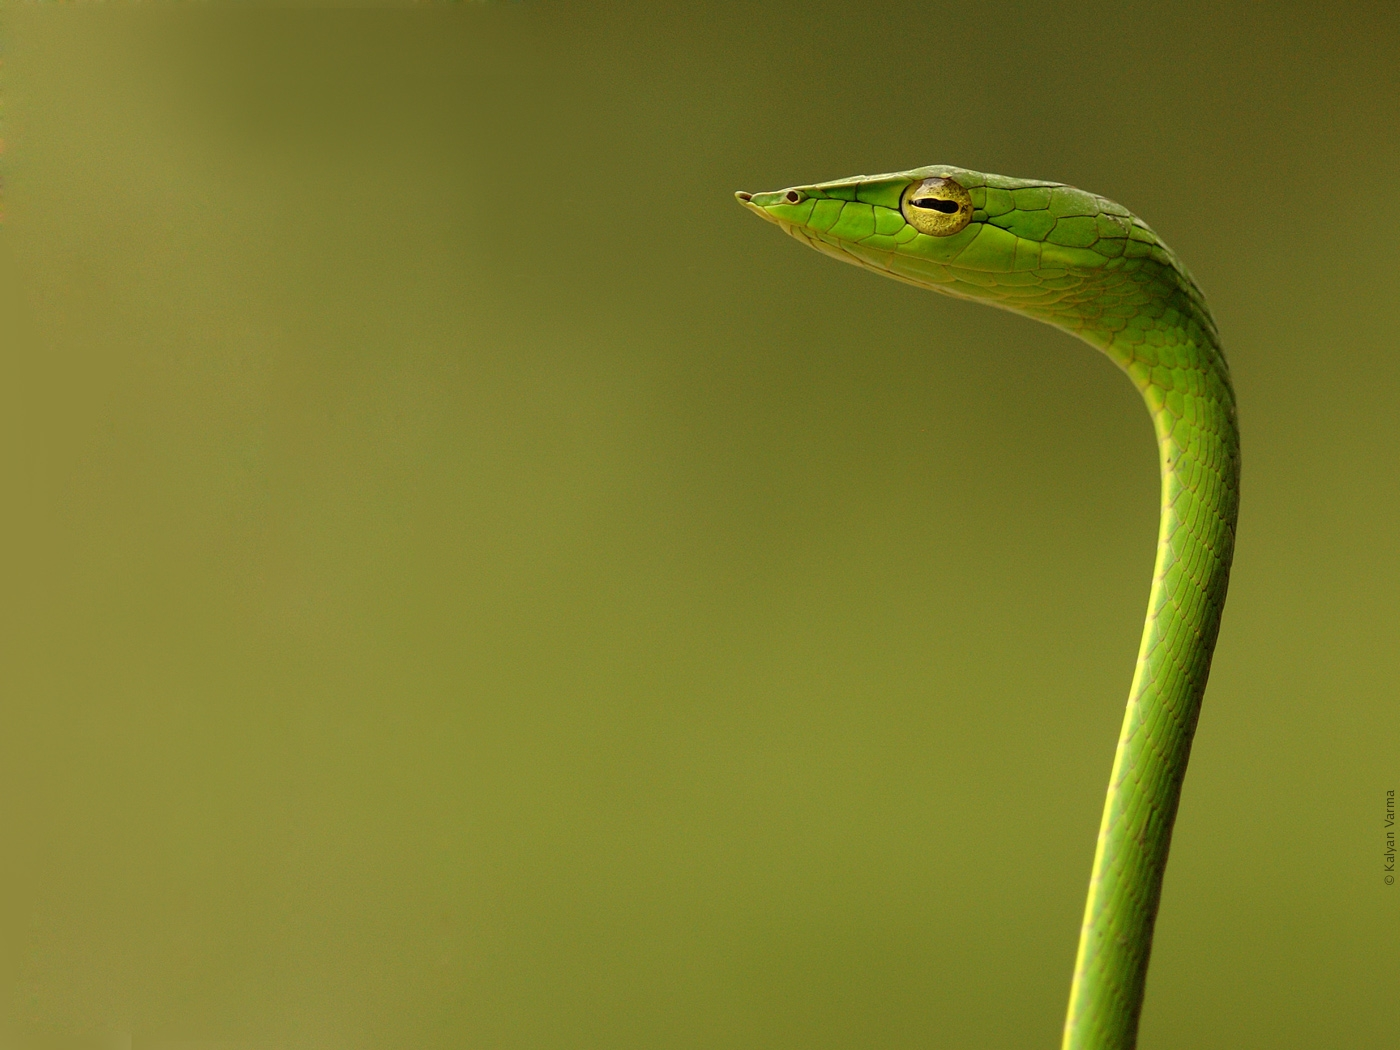 Beautiful Snake Wallpaper, Snake with Bird Wallpaper